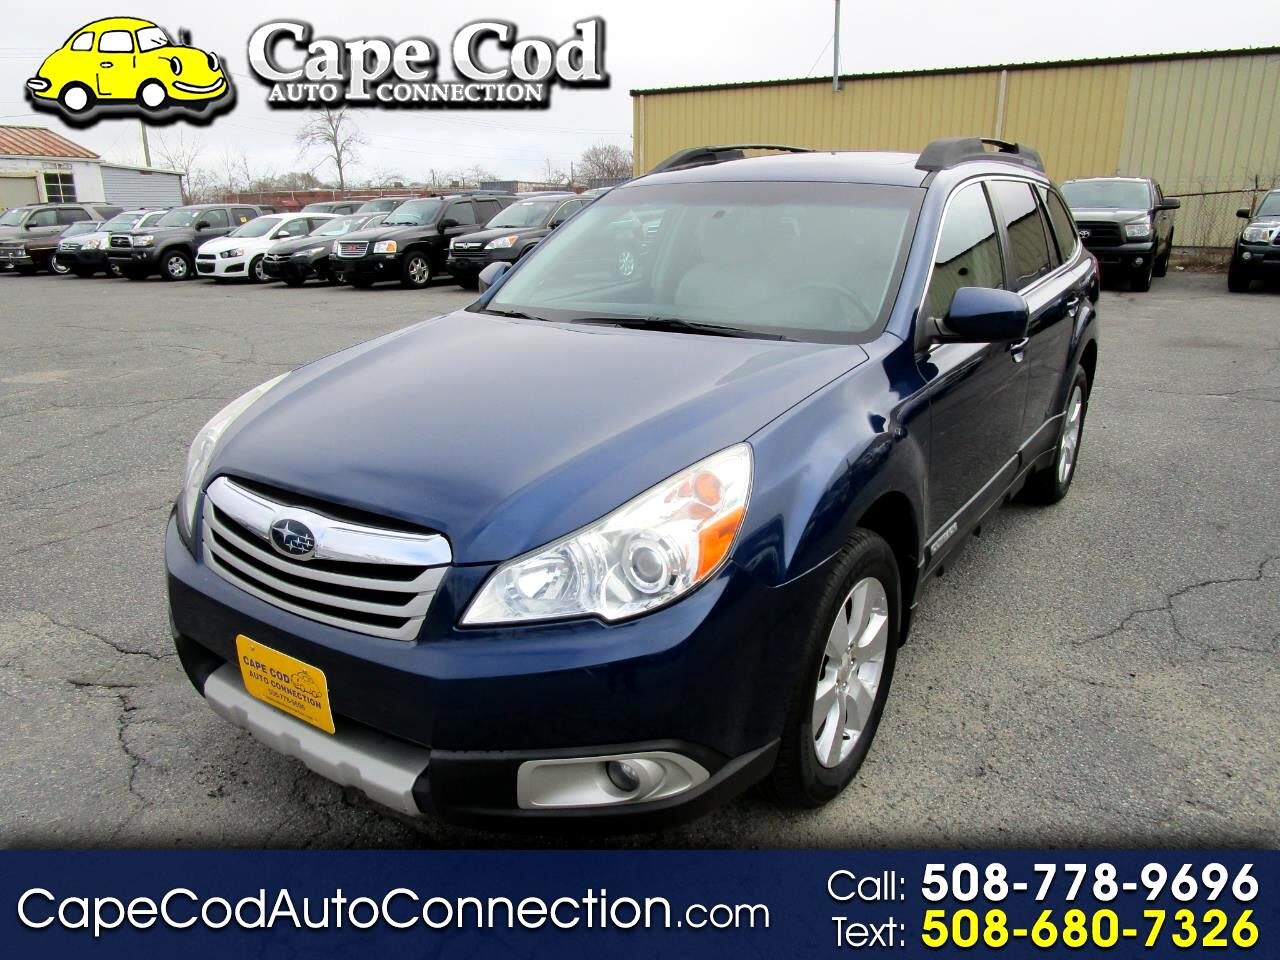 2011 Subaru Outback 4dr Wgn H6 Auto 3.6R Limited Pwr Moon/Nav